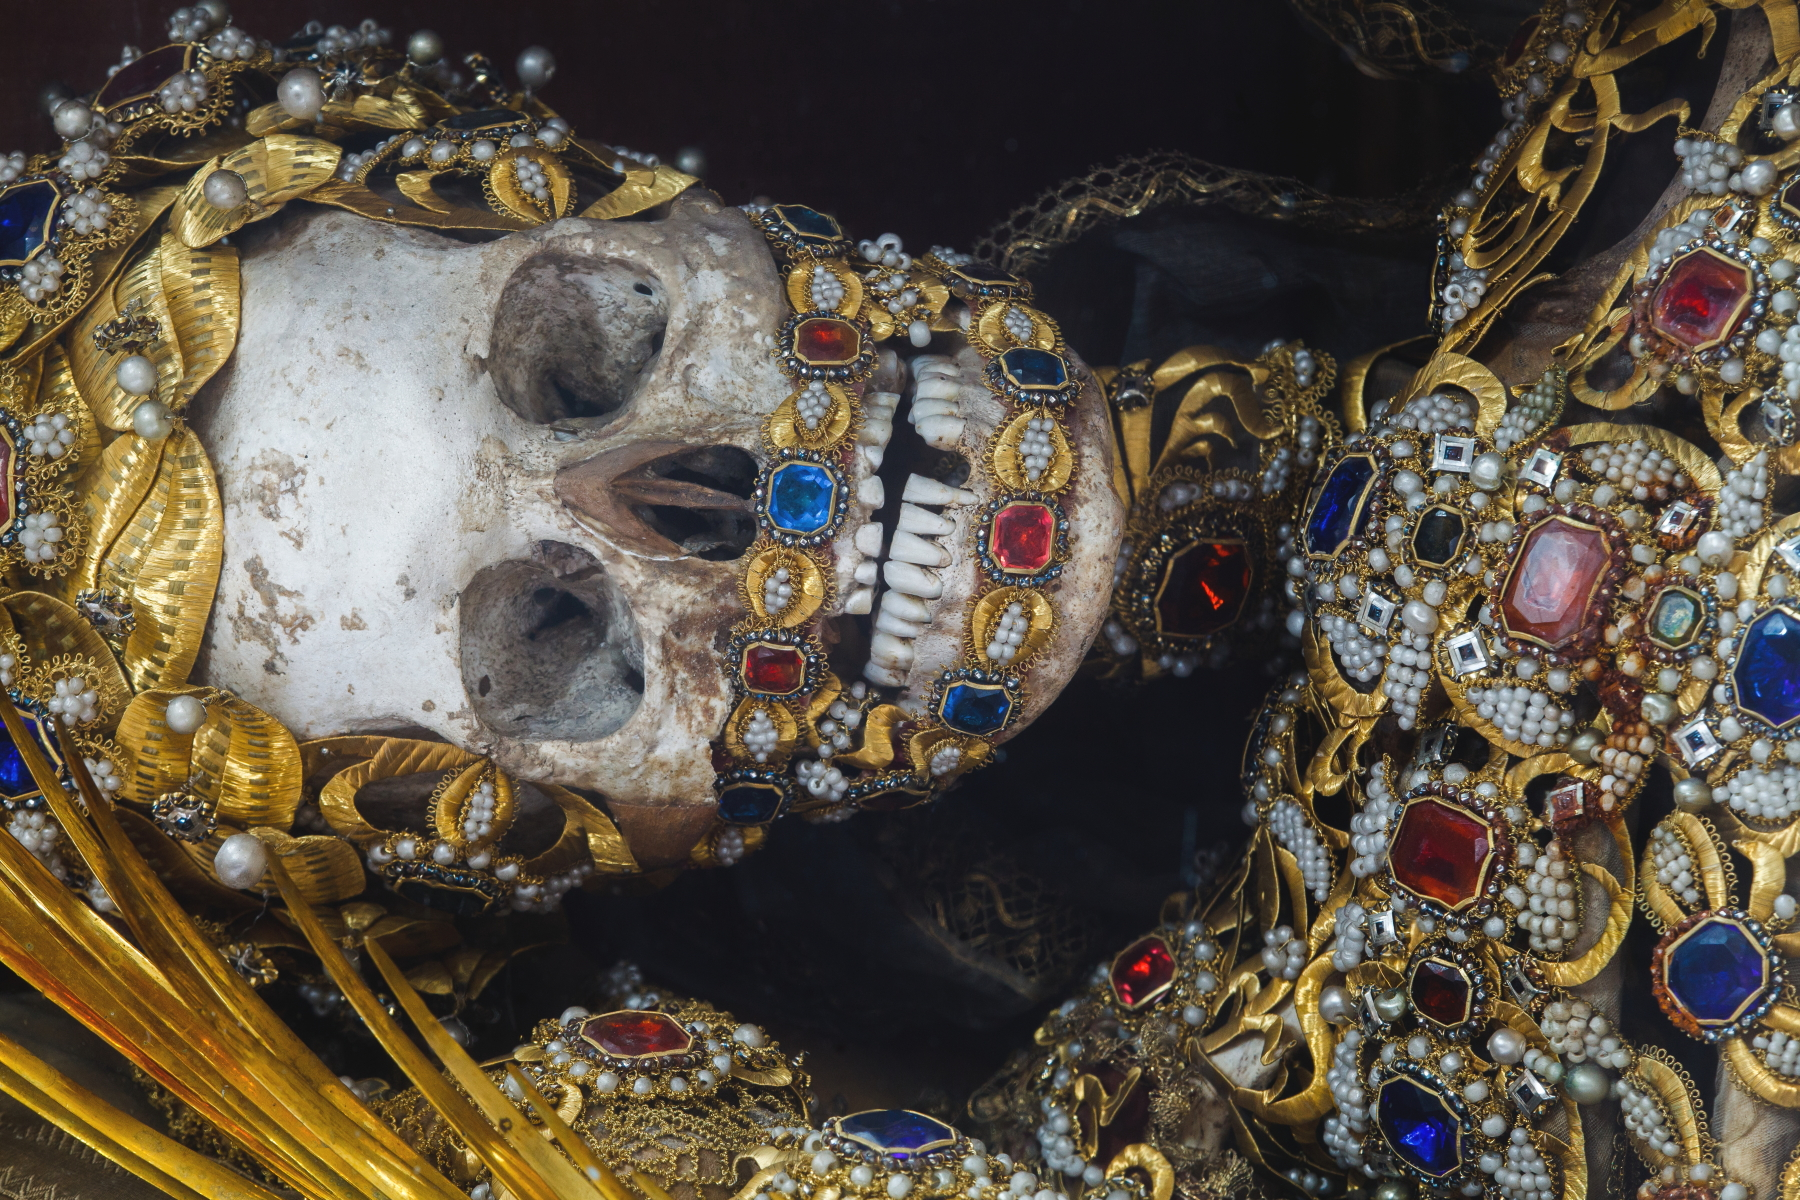 Paul Koudounaris' Heavenly Bodies: Cult Treasures and Spectacular Saints from the Catacombs.